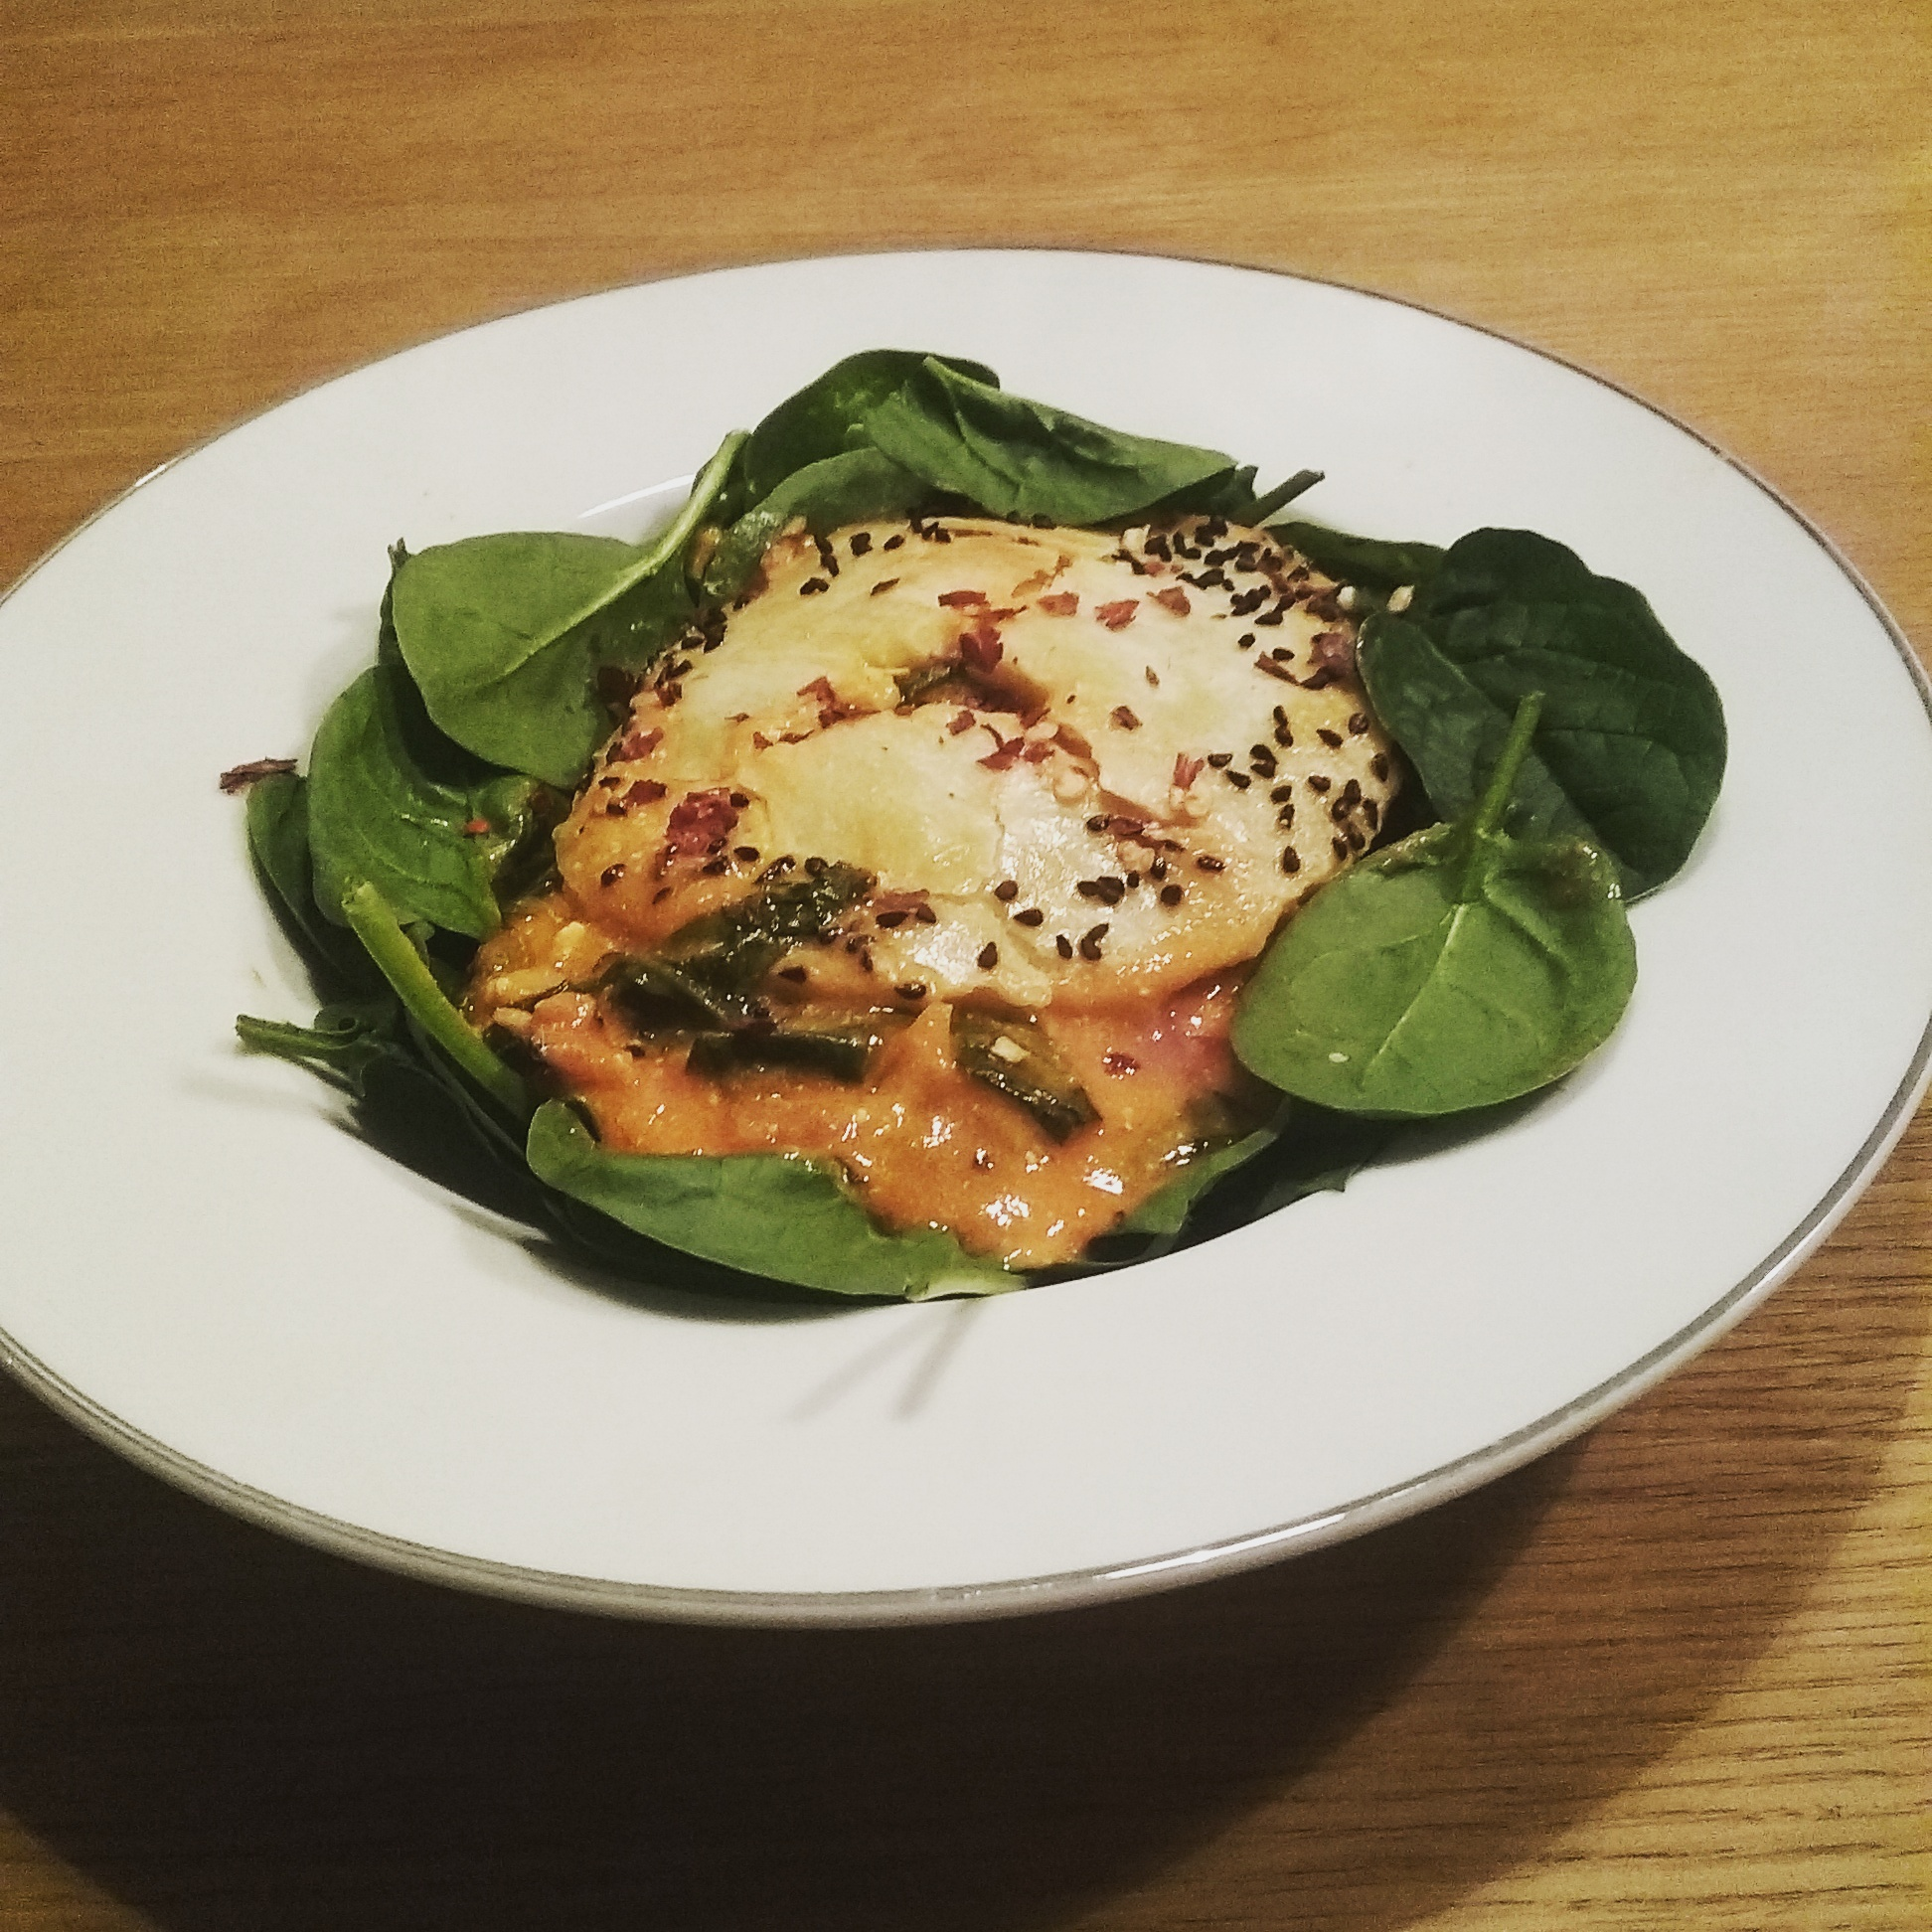 Feta And Spinach Pie V For 4 163 1 50